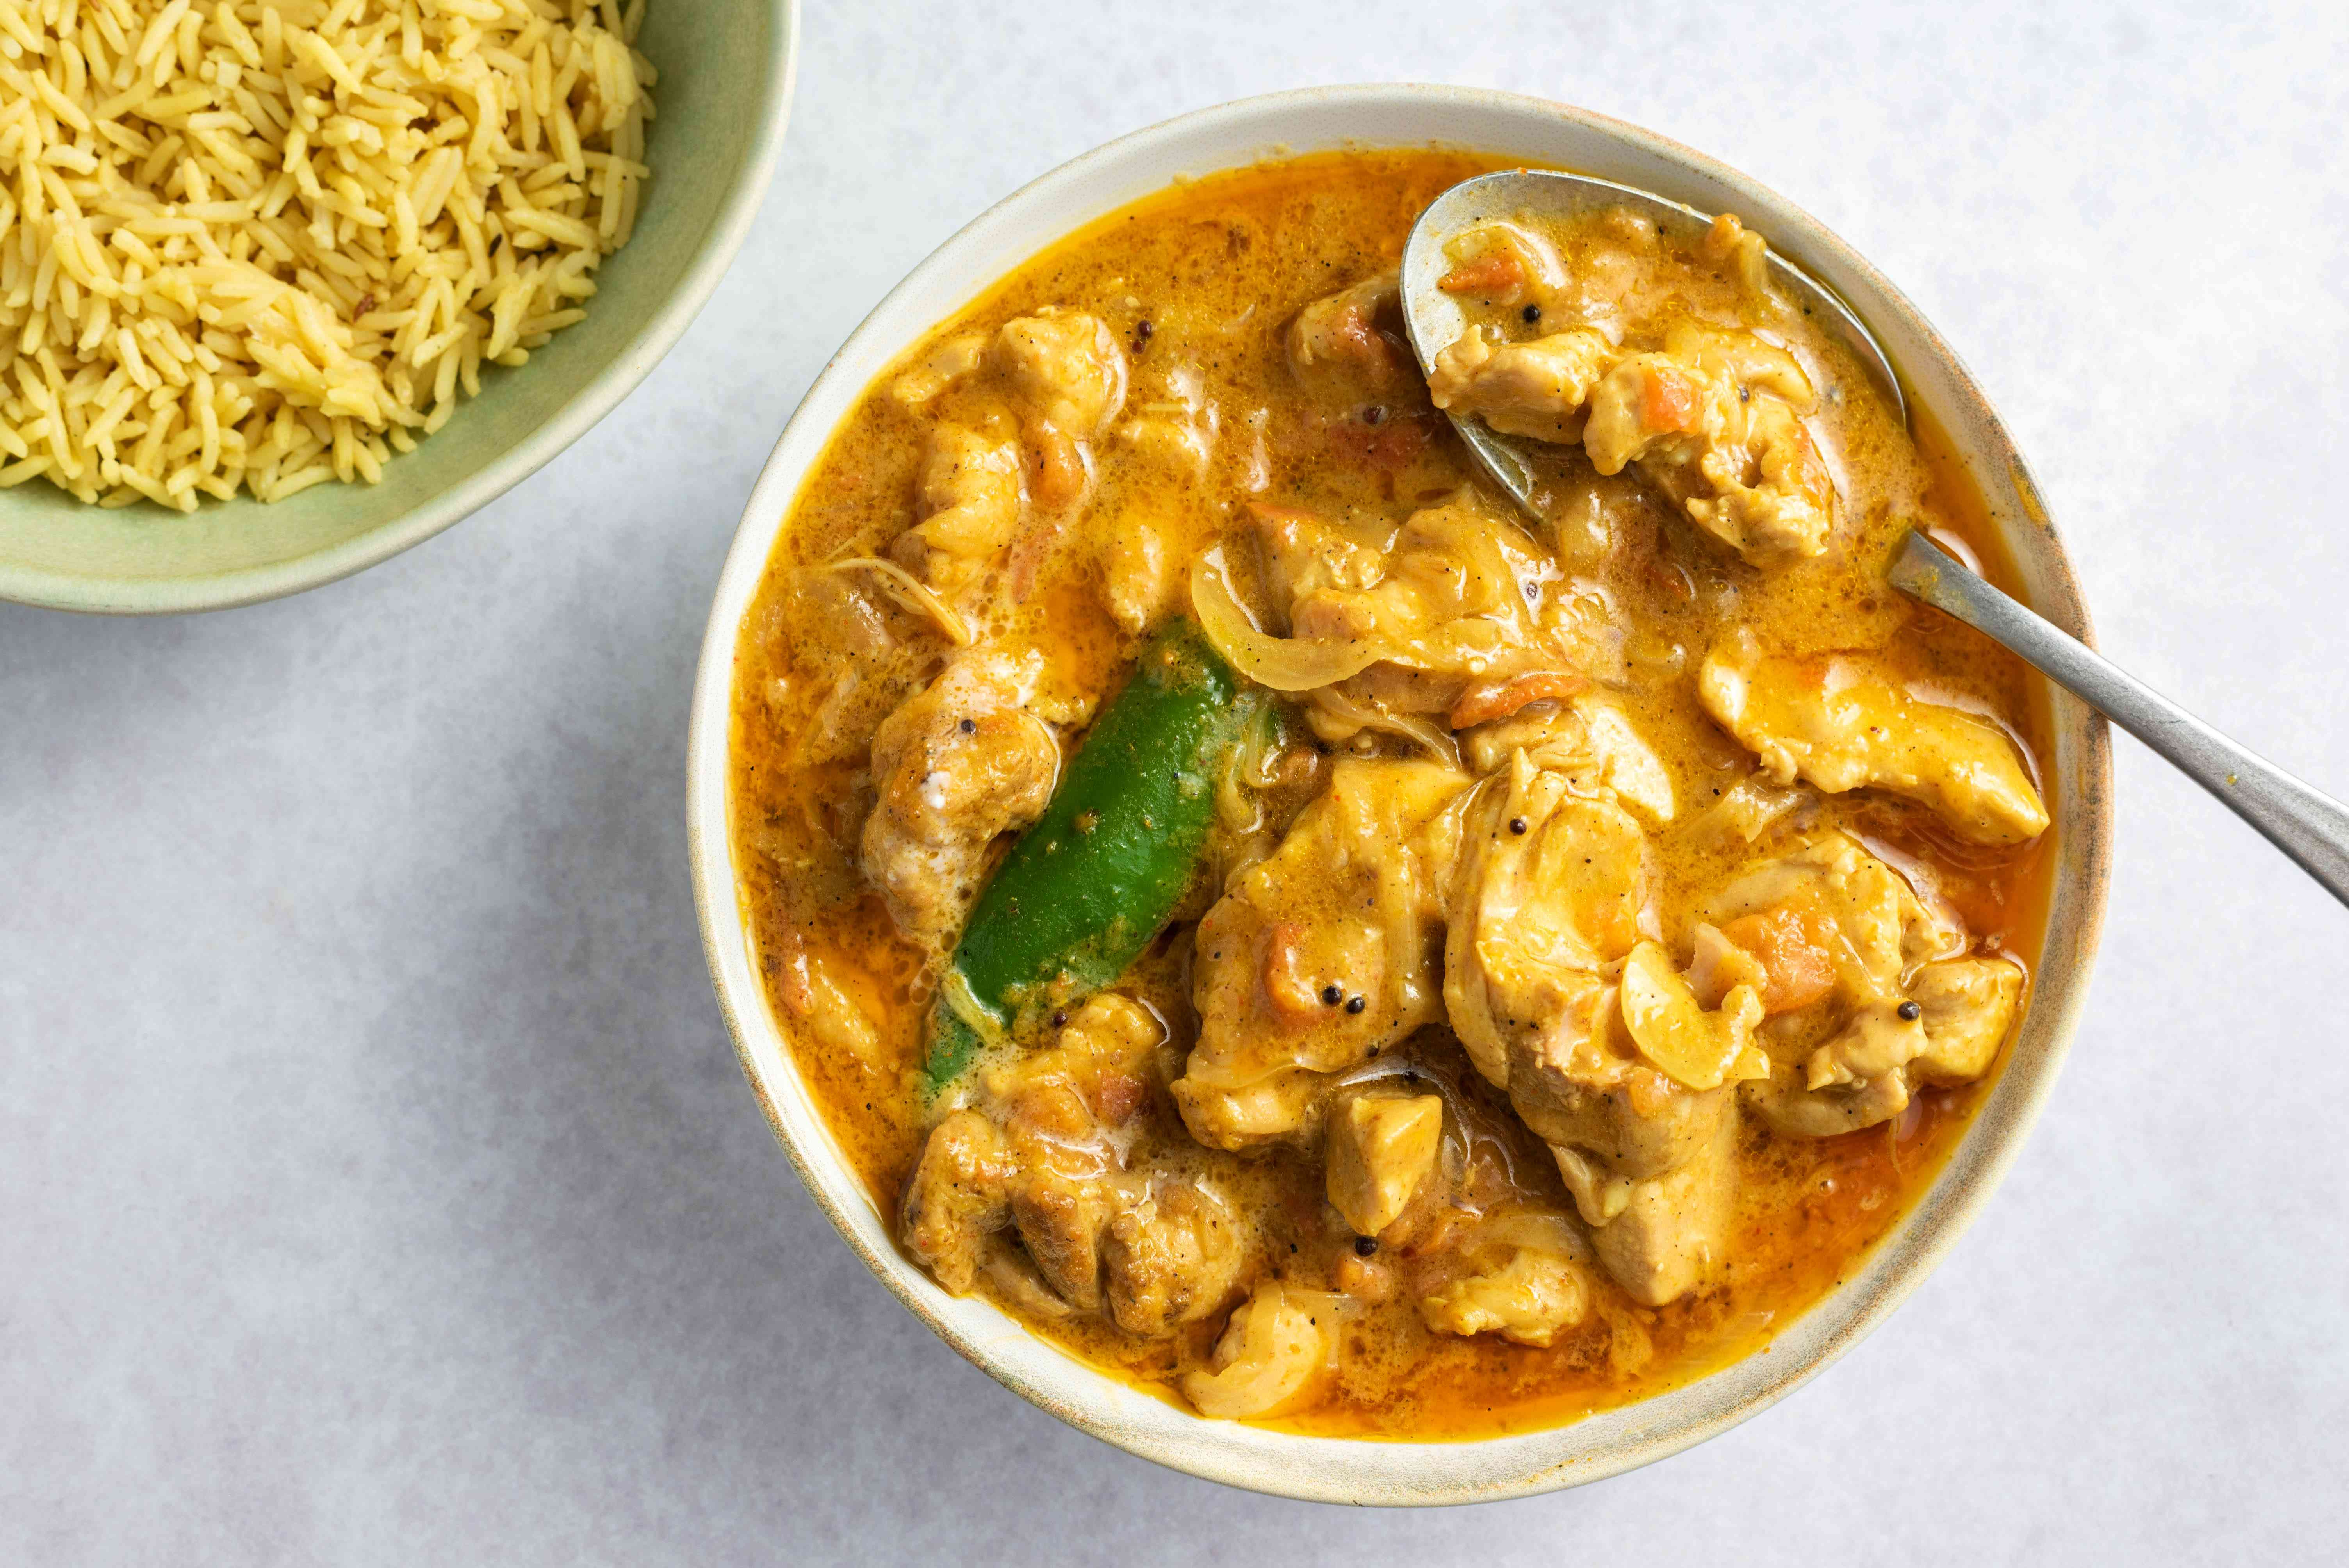 South Indian-Style Chicken Curry in a bowl